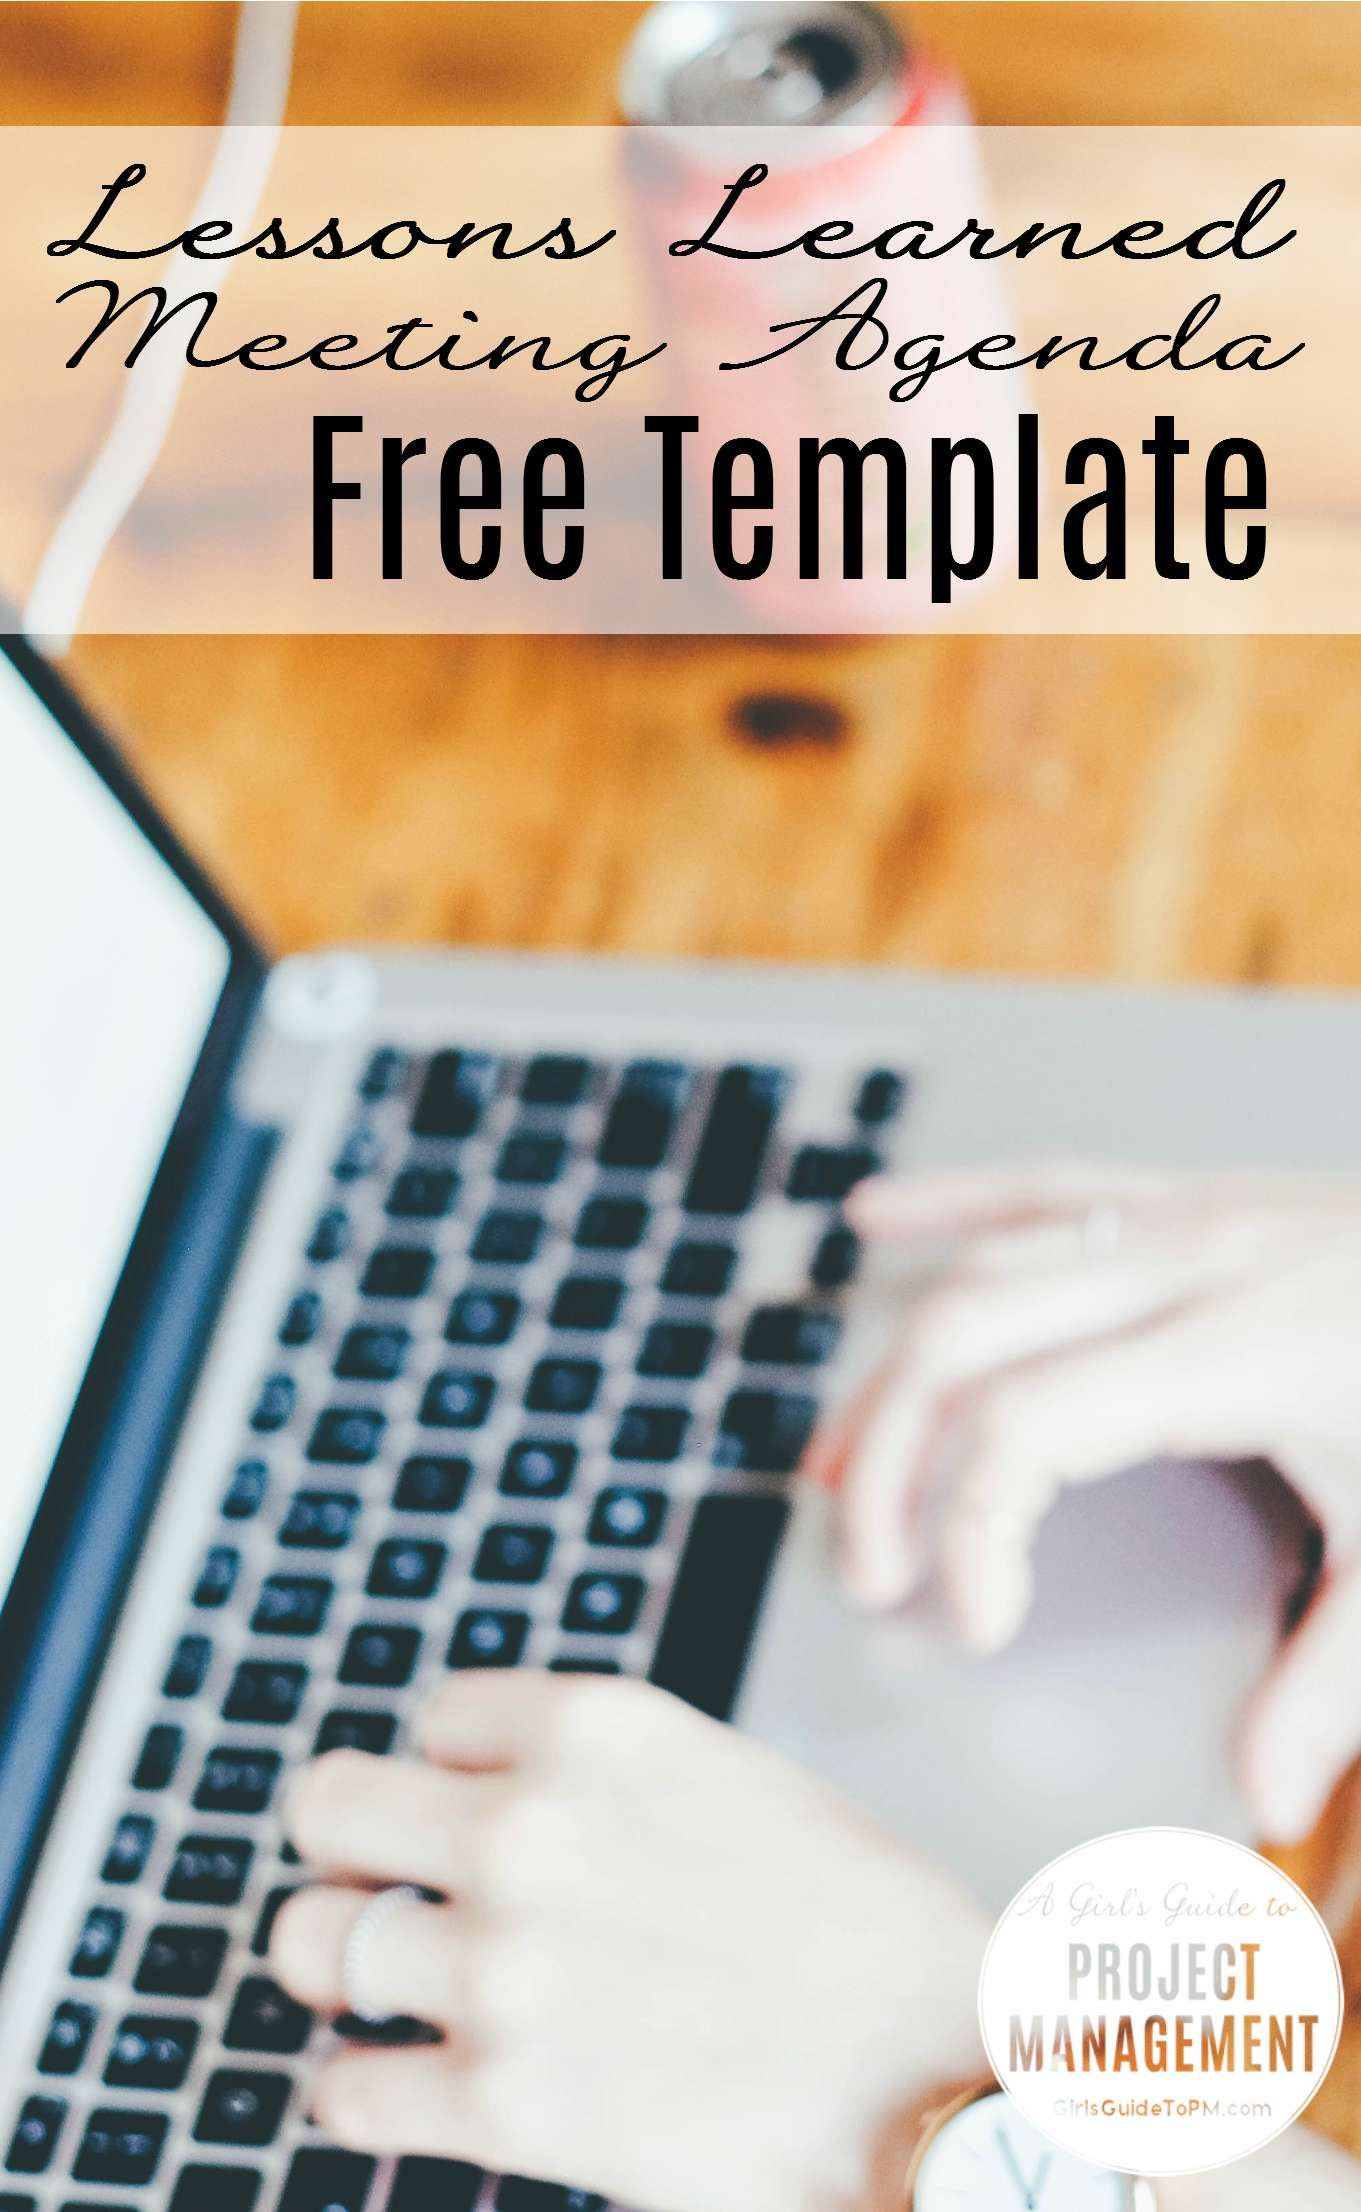 Download A Free Agenda Template For A Lessons Learned Or Post